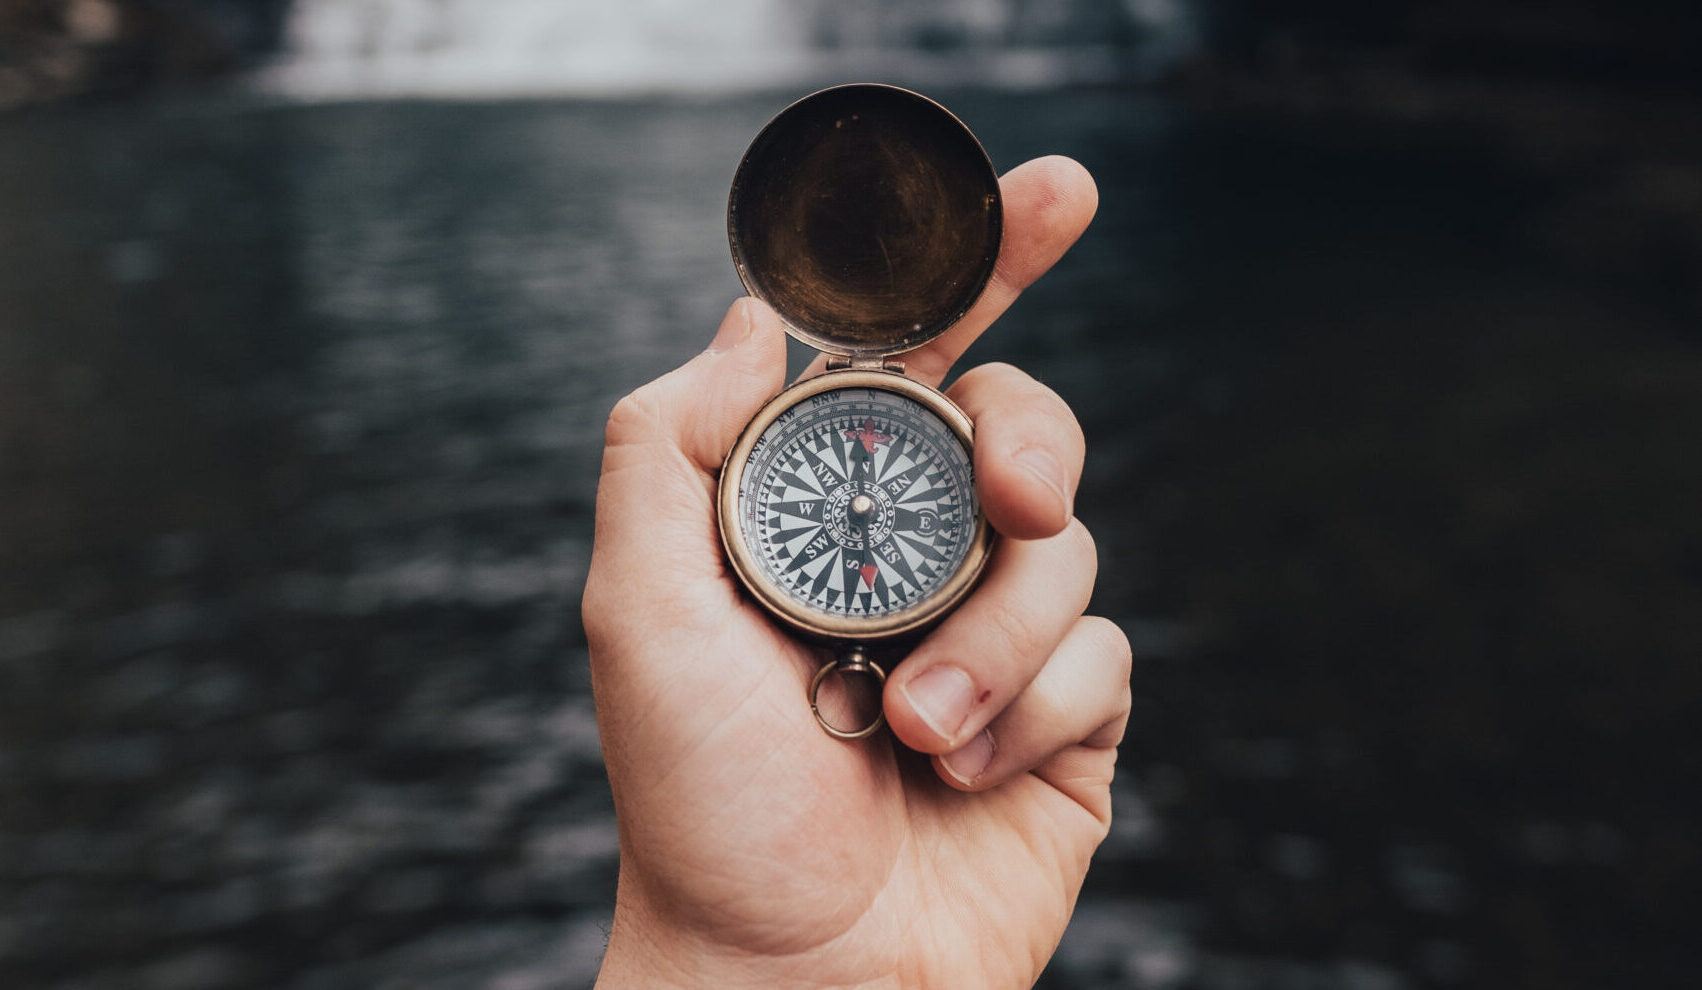 Calibrating your Personal Compass